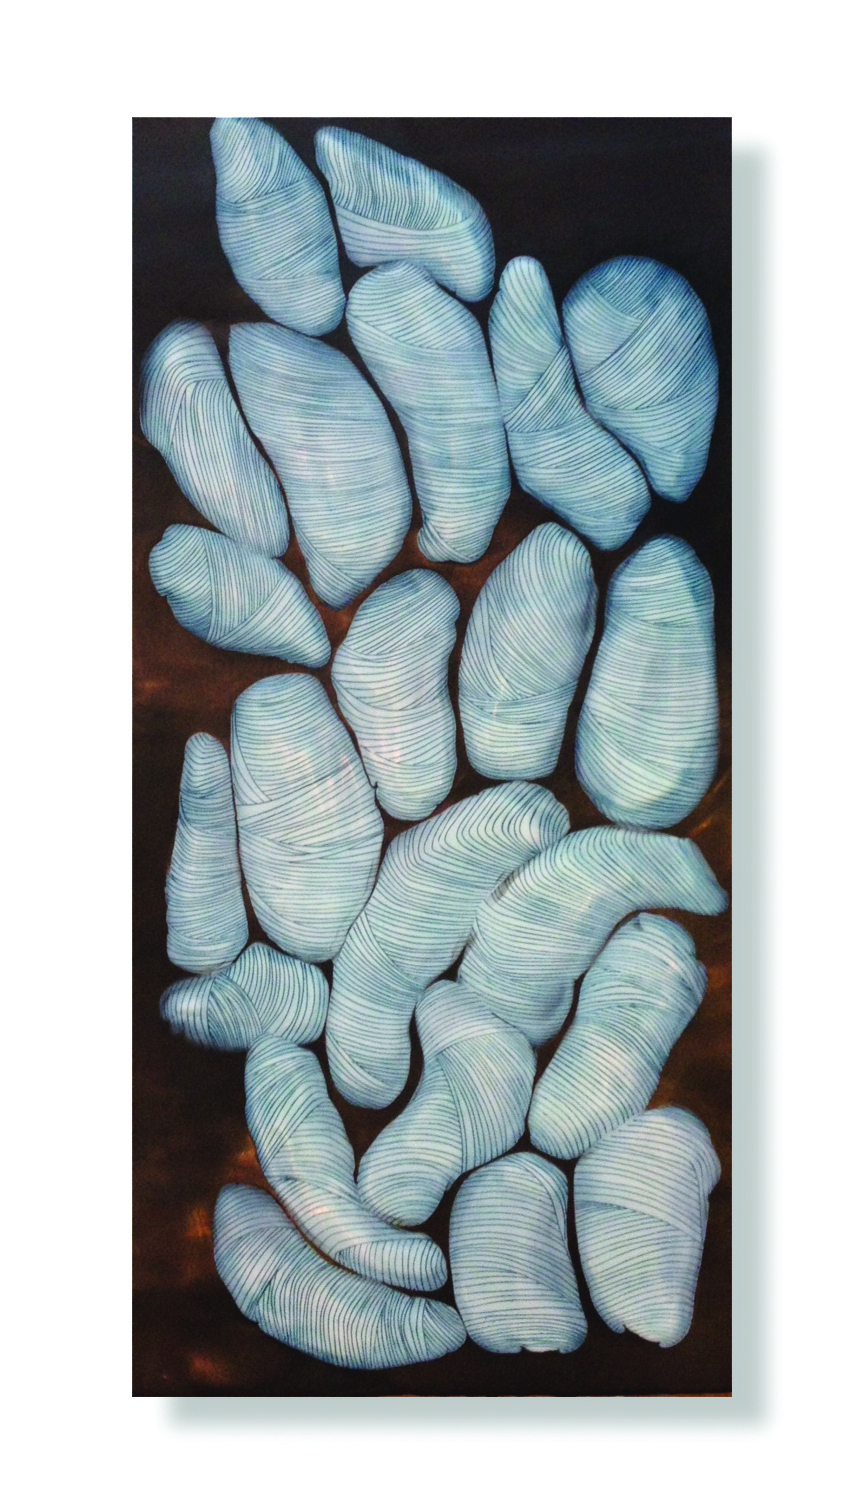 "Bundle Theory, 2015 Encaustic, Oil 12"" x 24"" x 2"" SOLD"